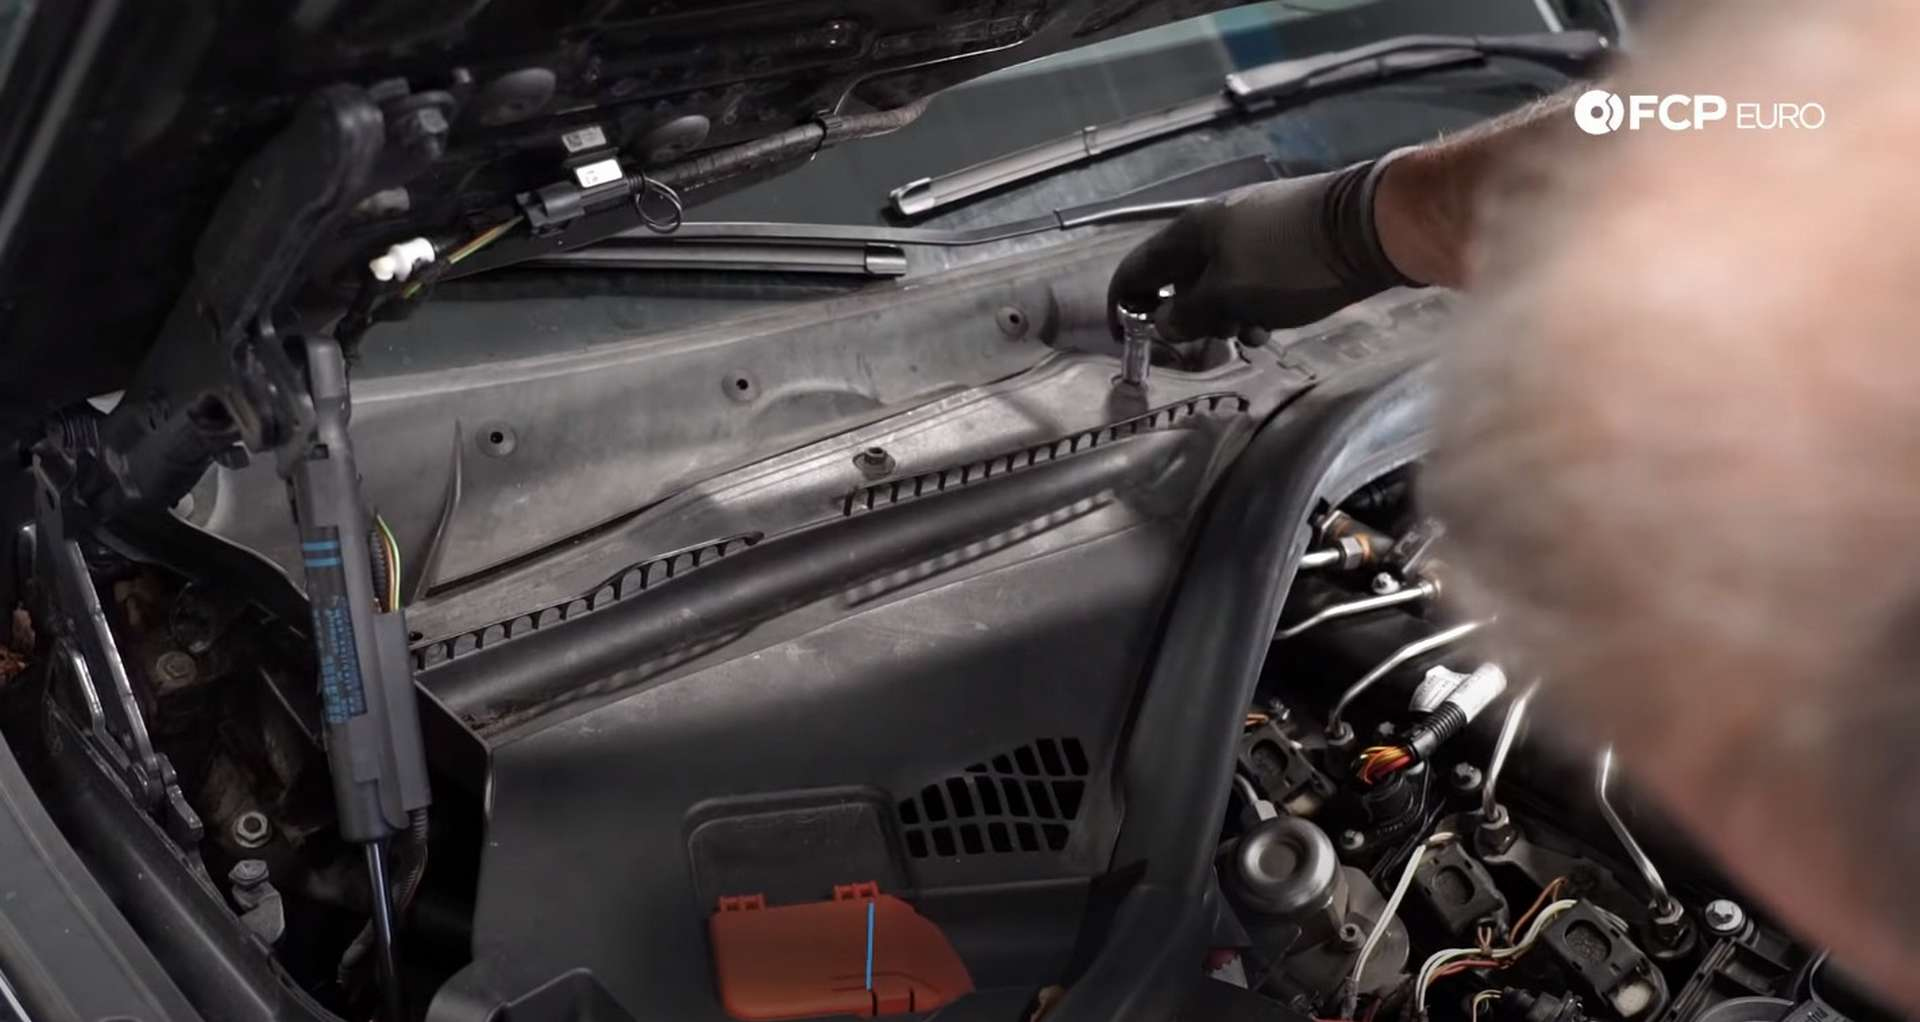 DIY BMW F30 Fuel Injector Replacement turning the cowl's fasteners